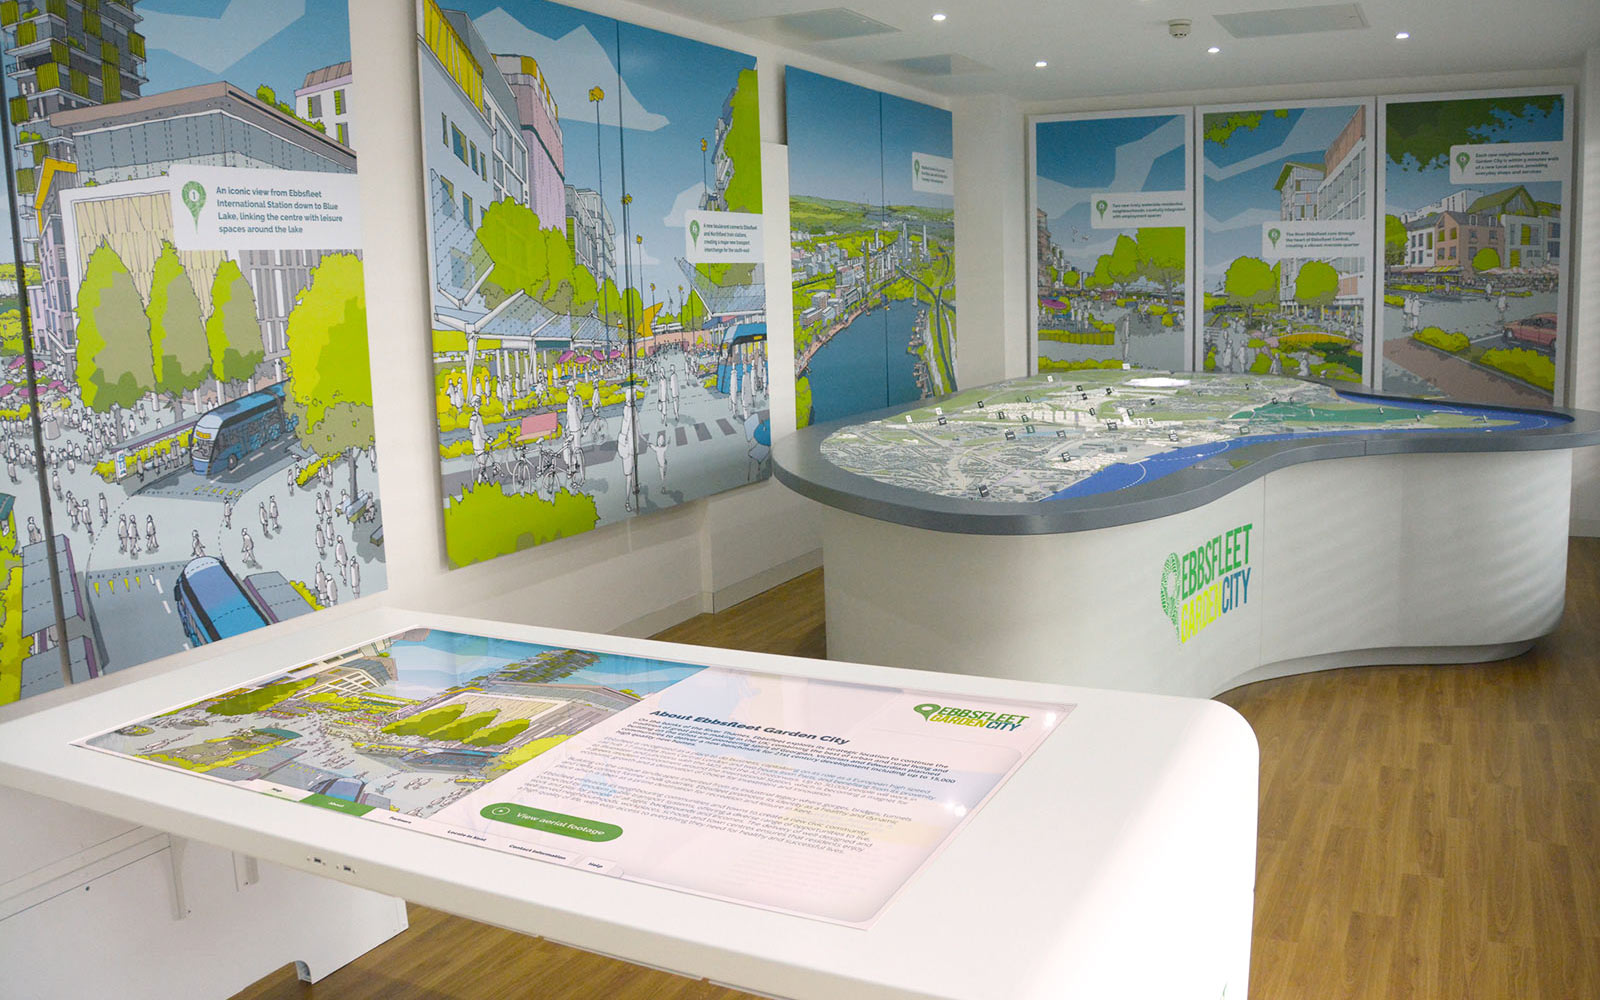 Eppfleet interactive display showing illustrated walls and large interactive touchscreen presentation on white table